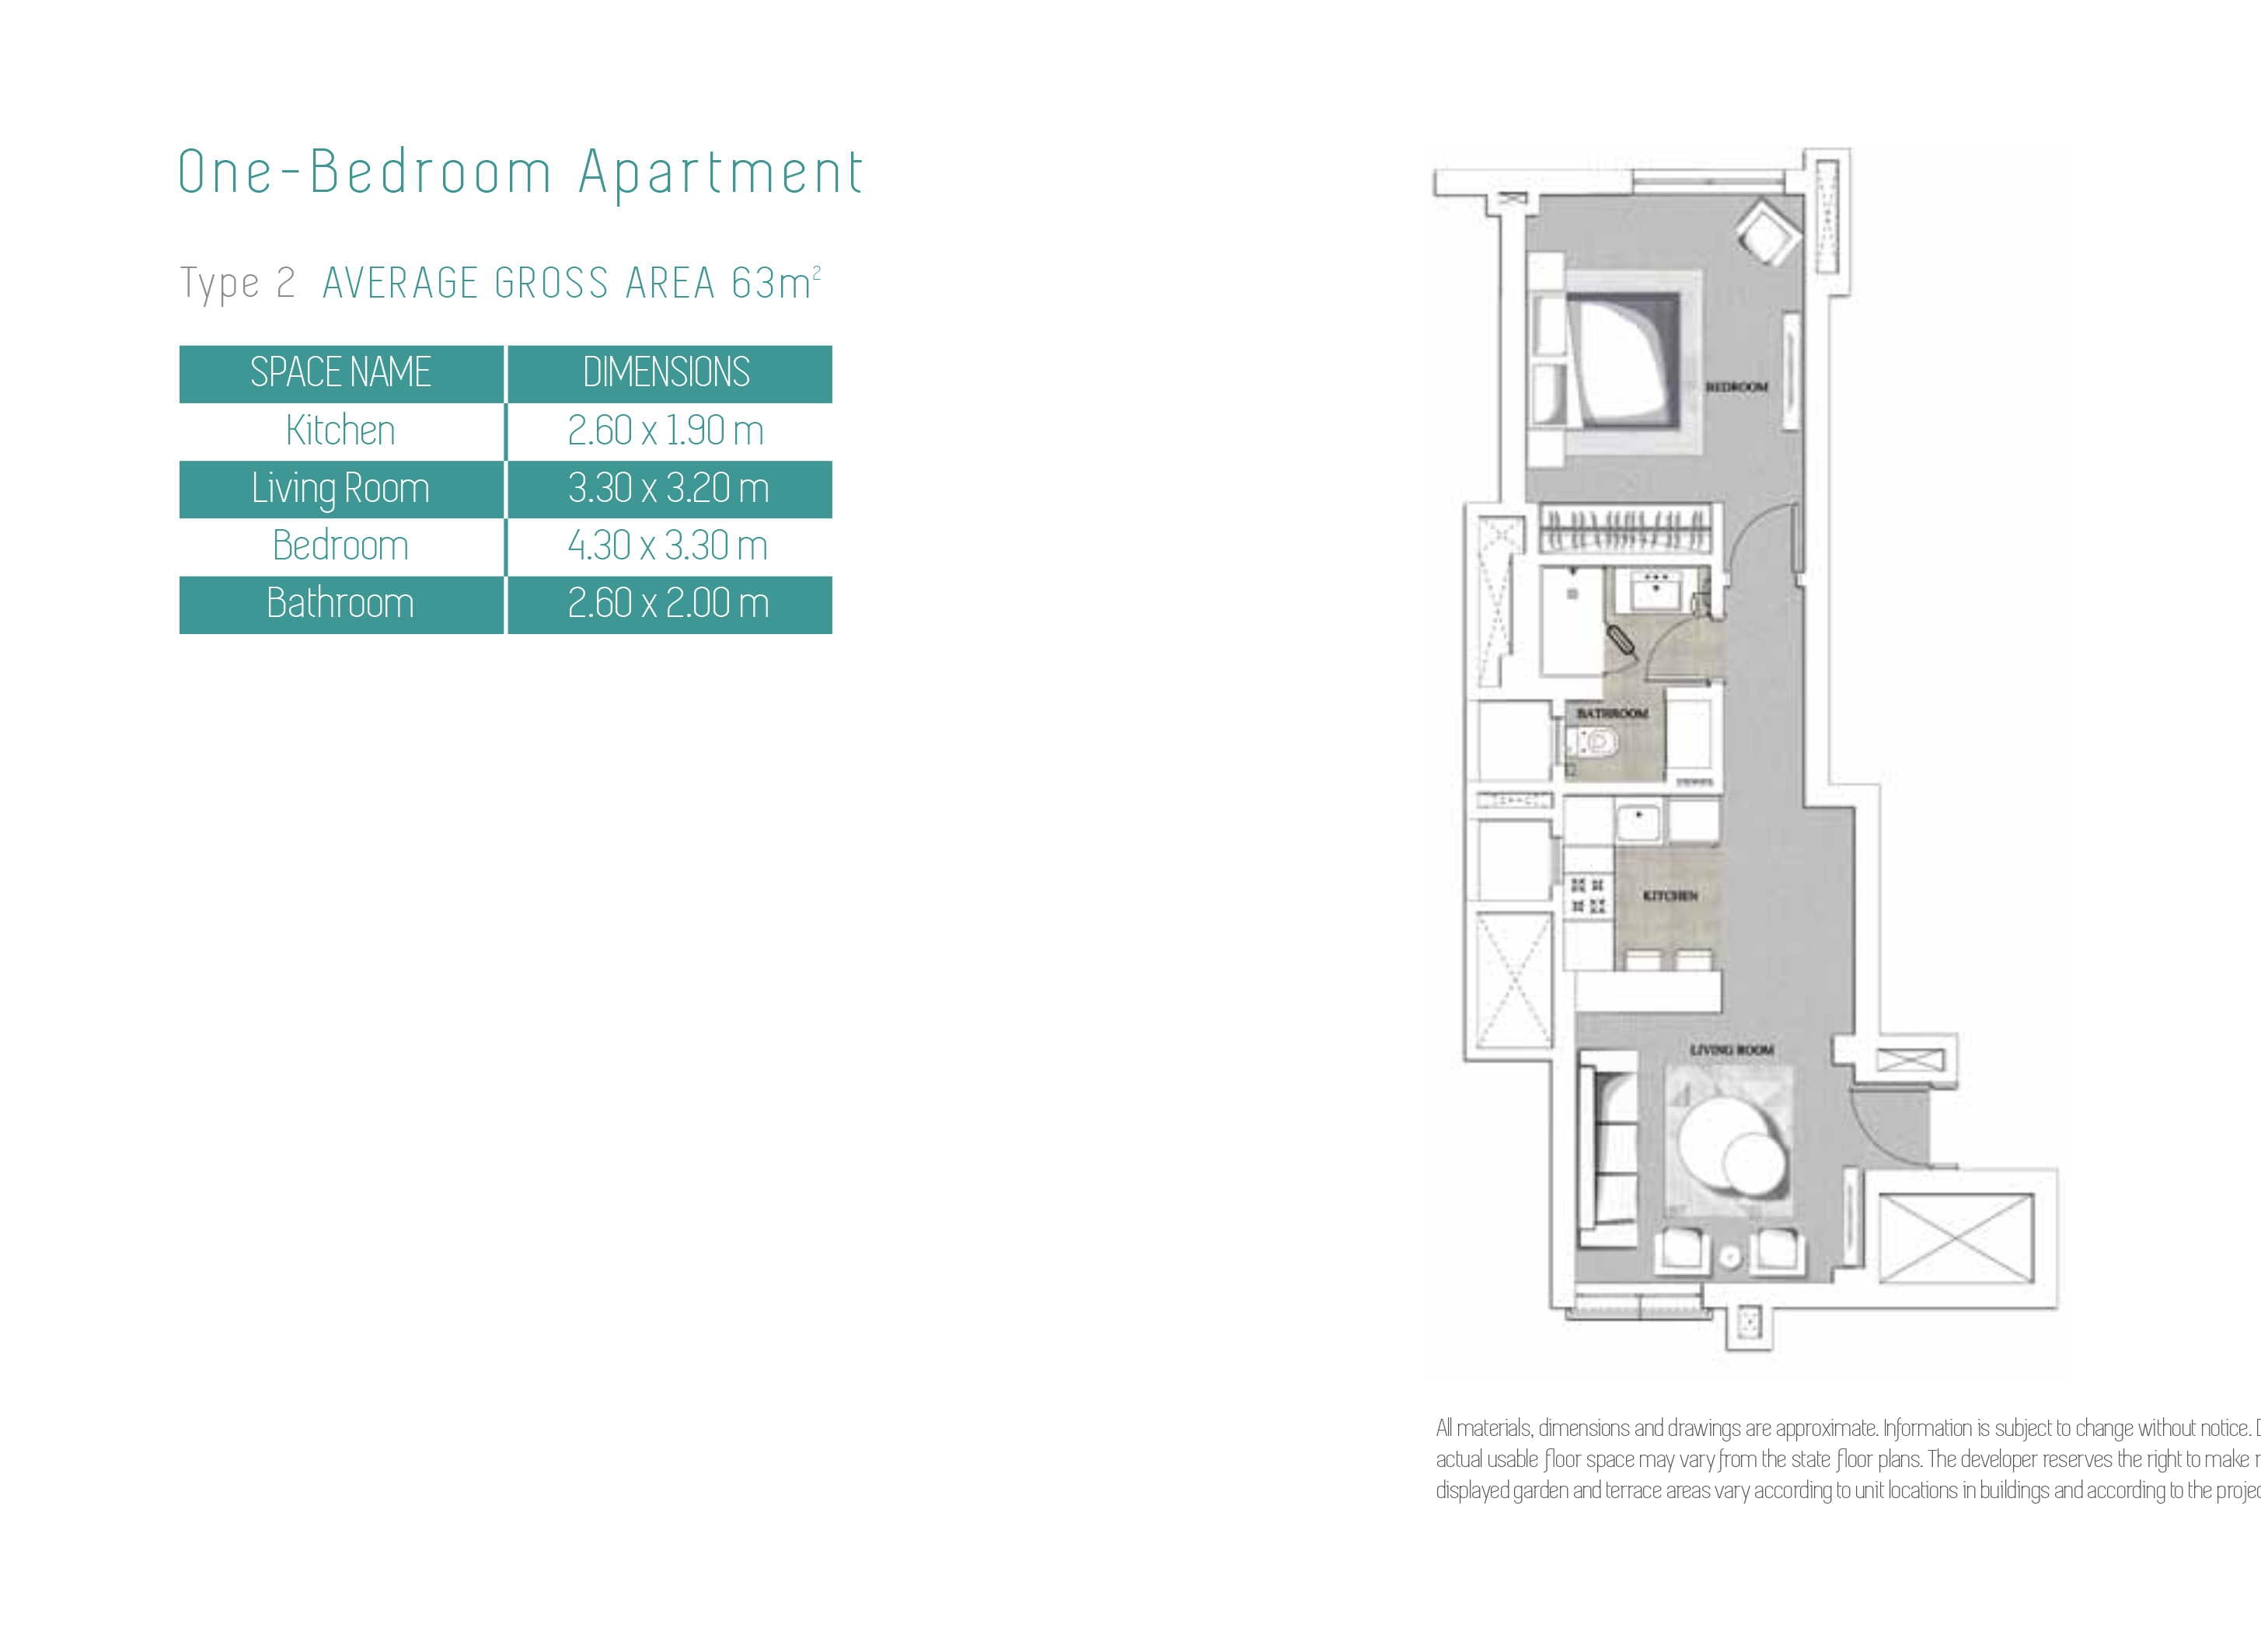 Plan Veranda Veranda Apartment Sahl Hasheesh 10 Years Instalment Plan El